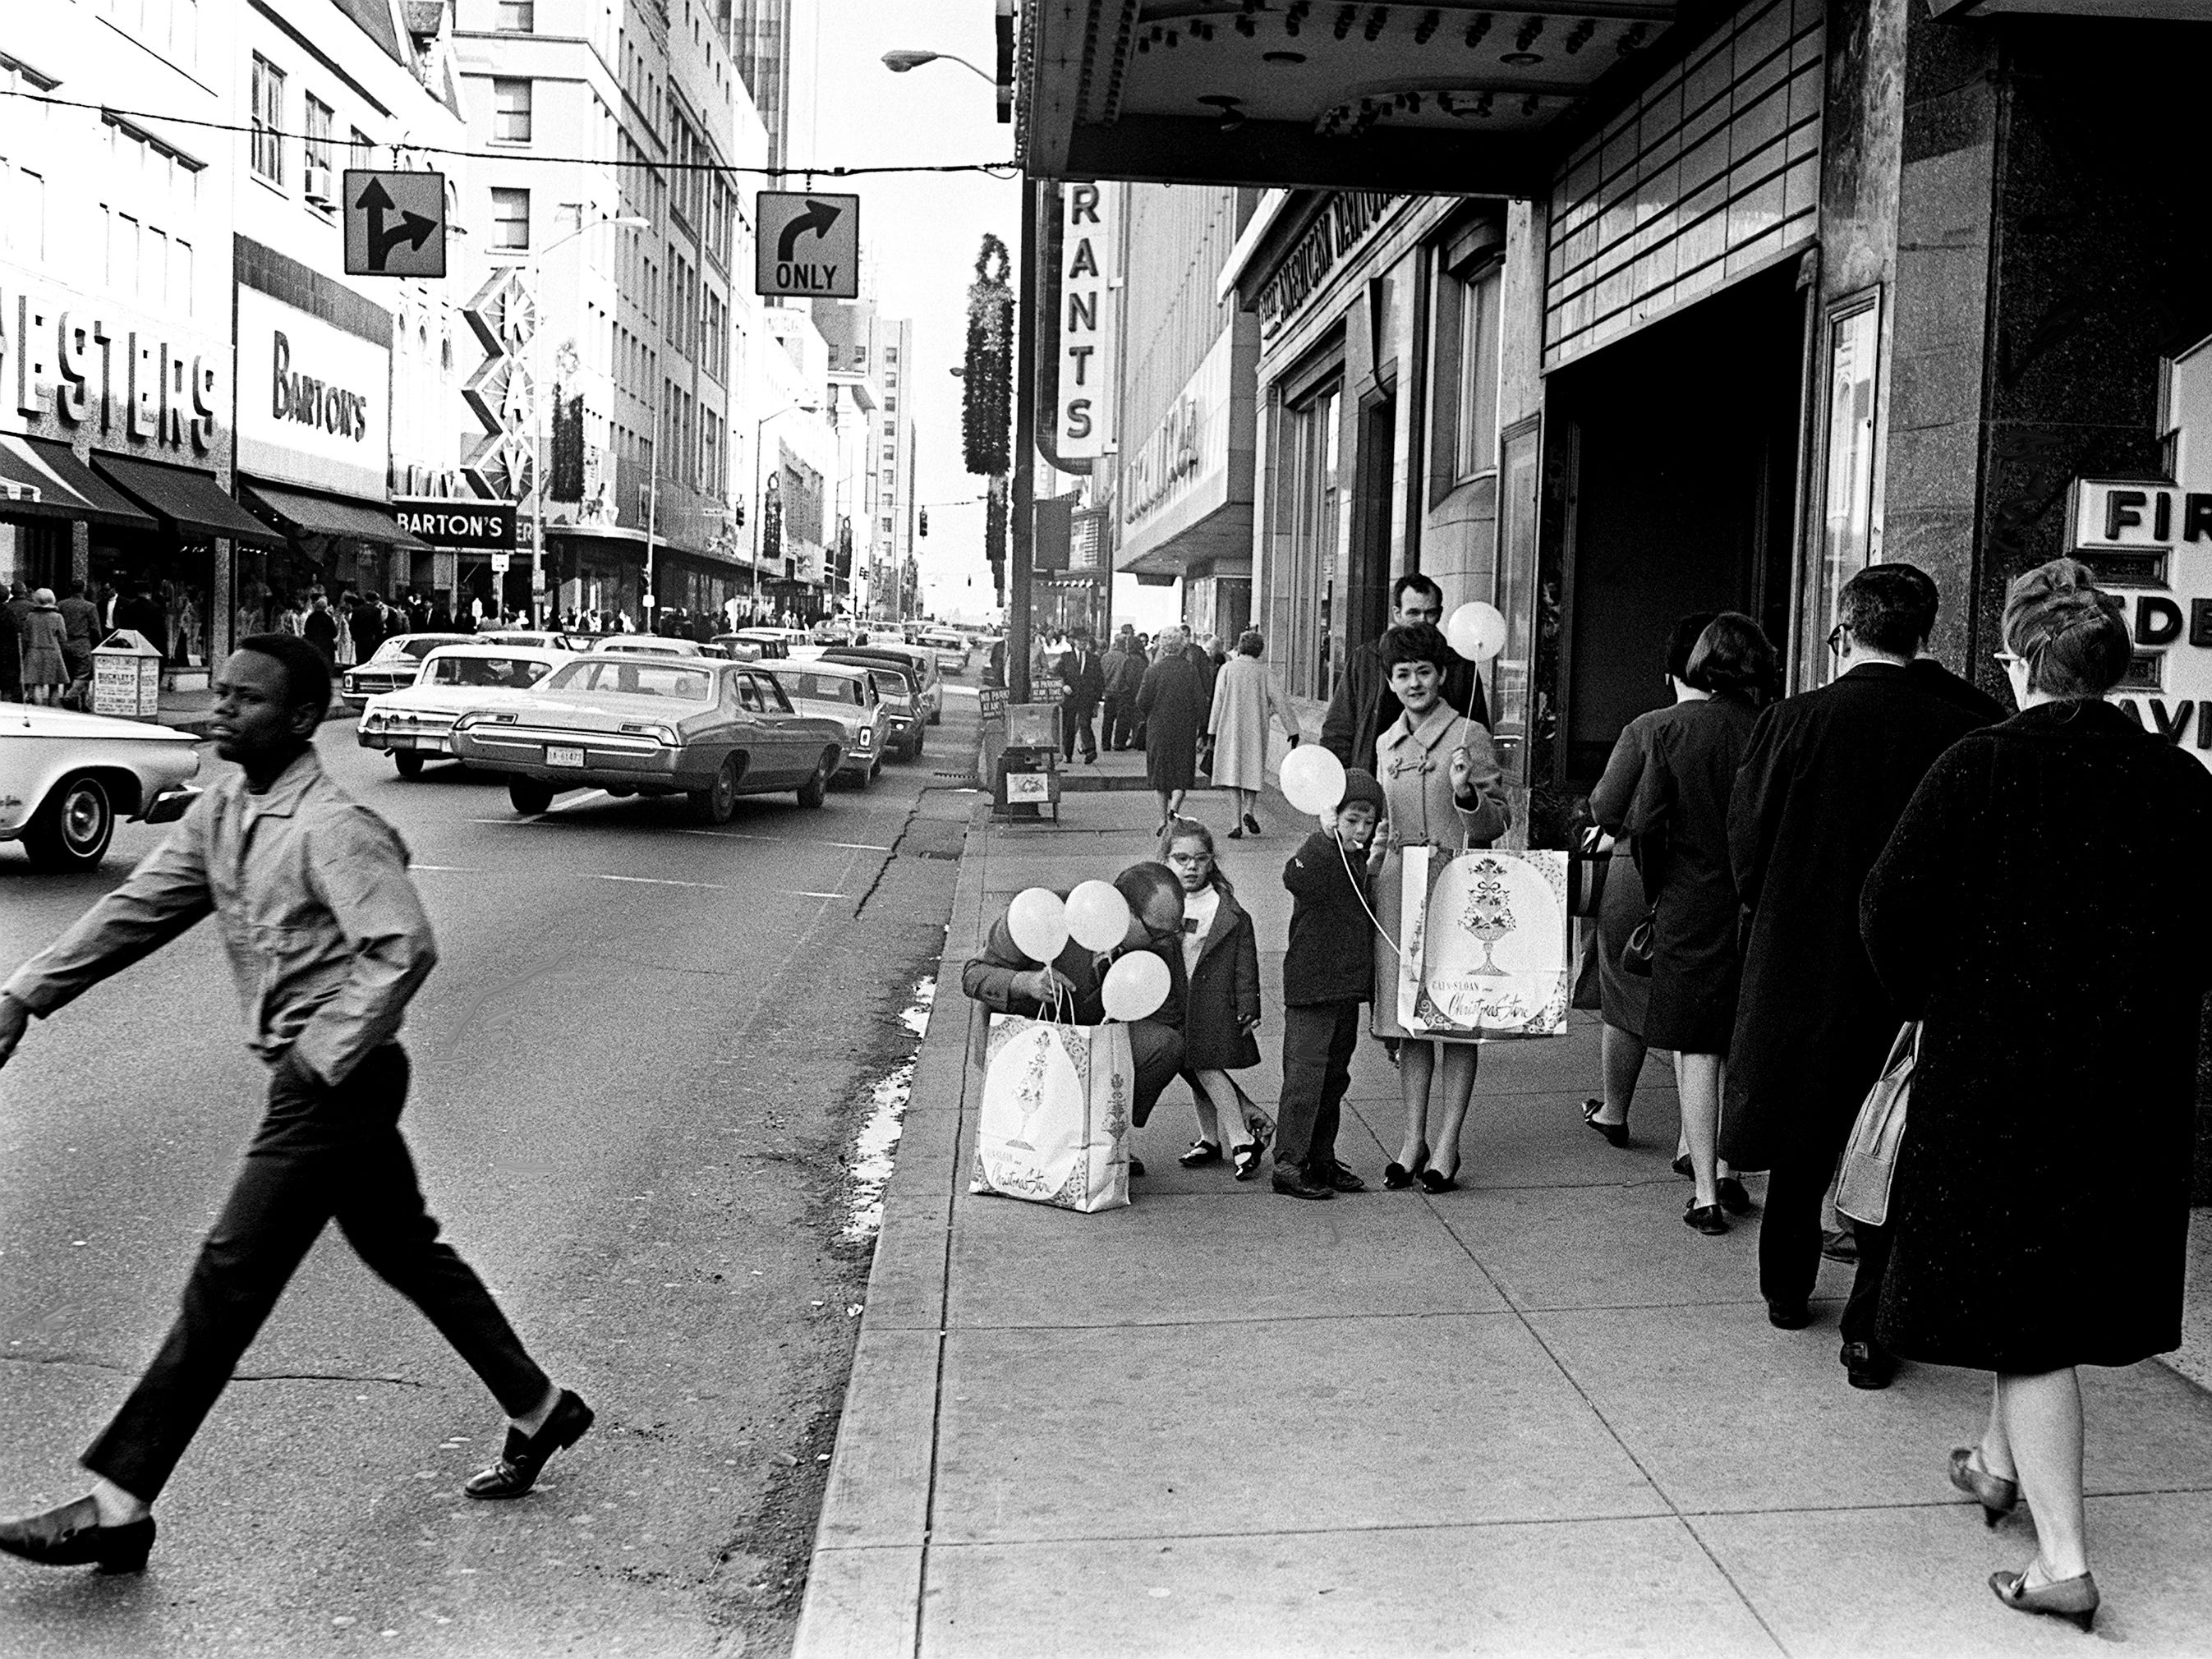 Getting an early start on Christmas shopping, shoppers and cars are packing Church Street in downtown Nashville Nov. 30, 1968.